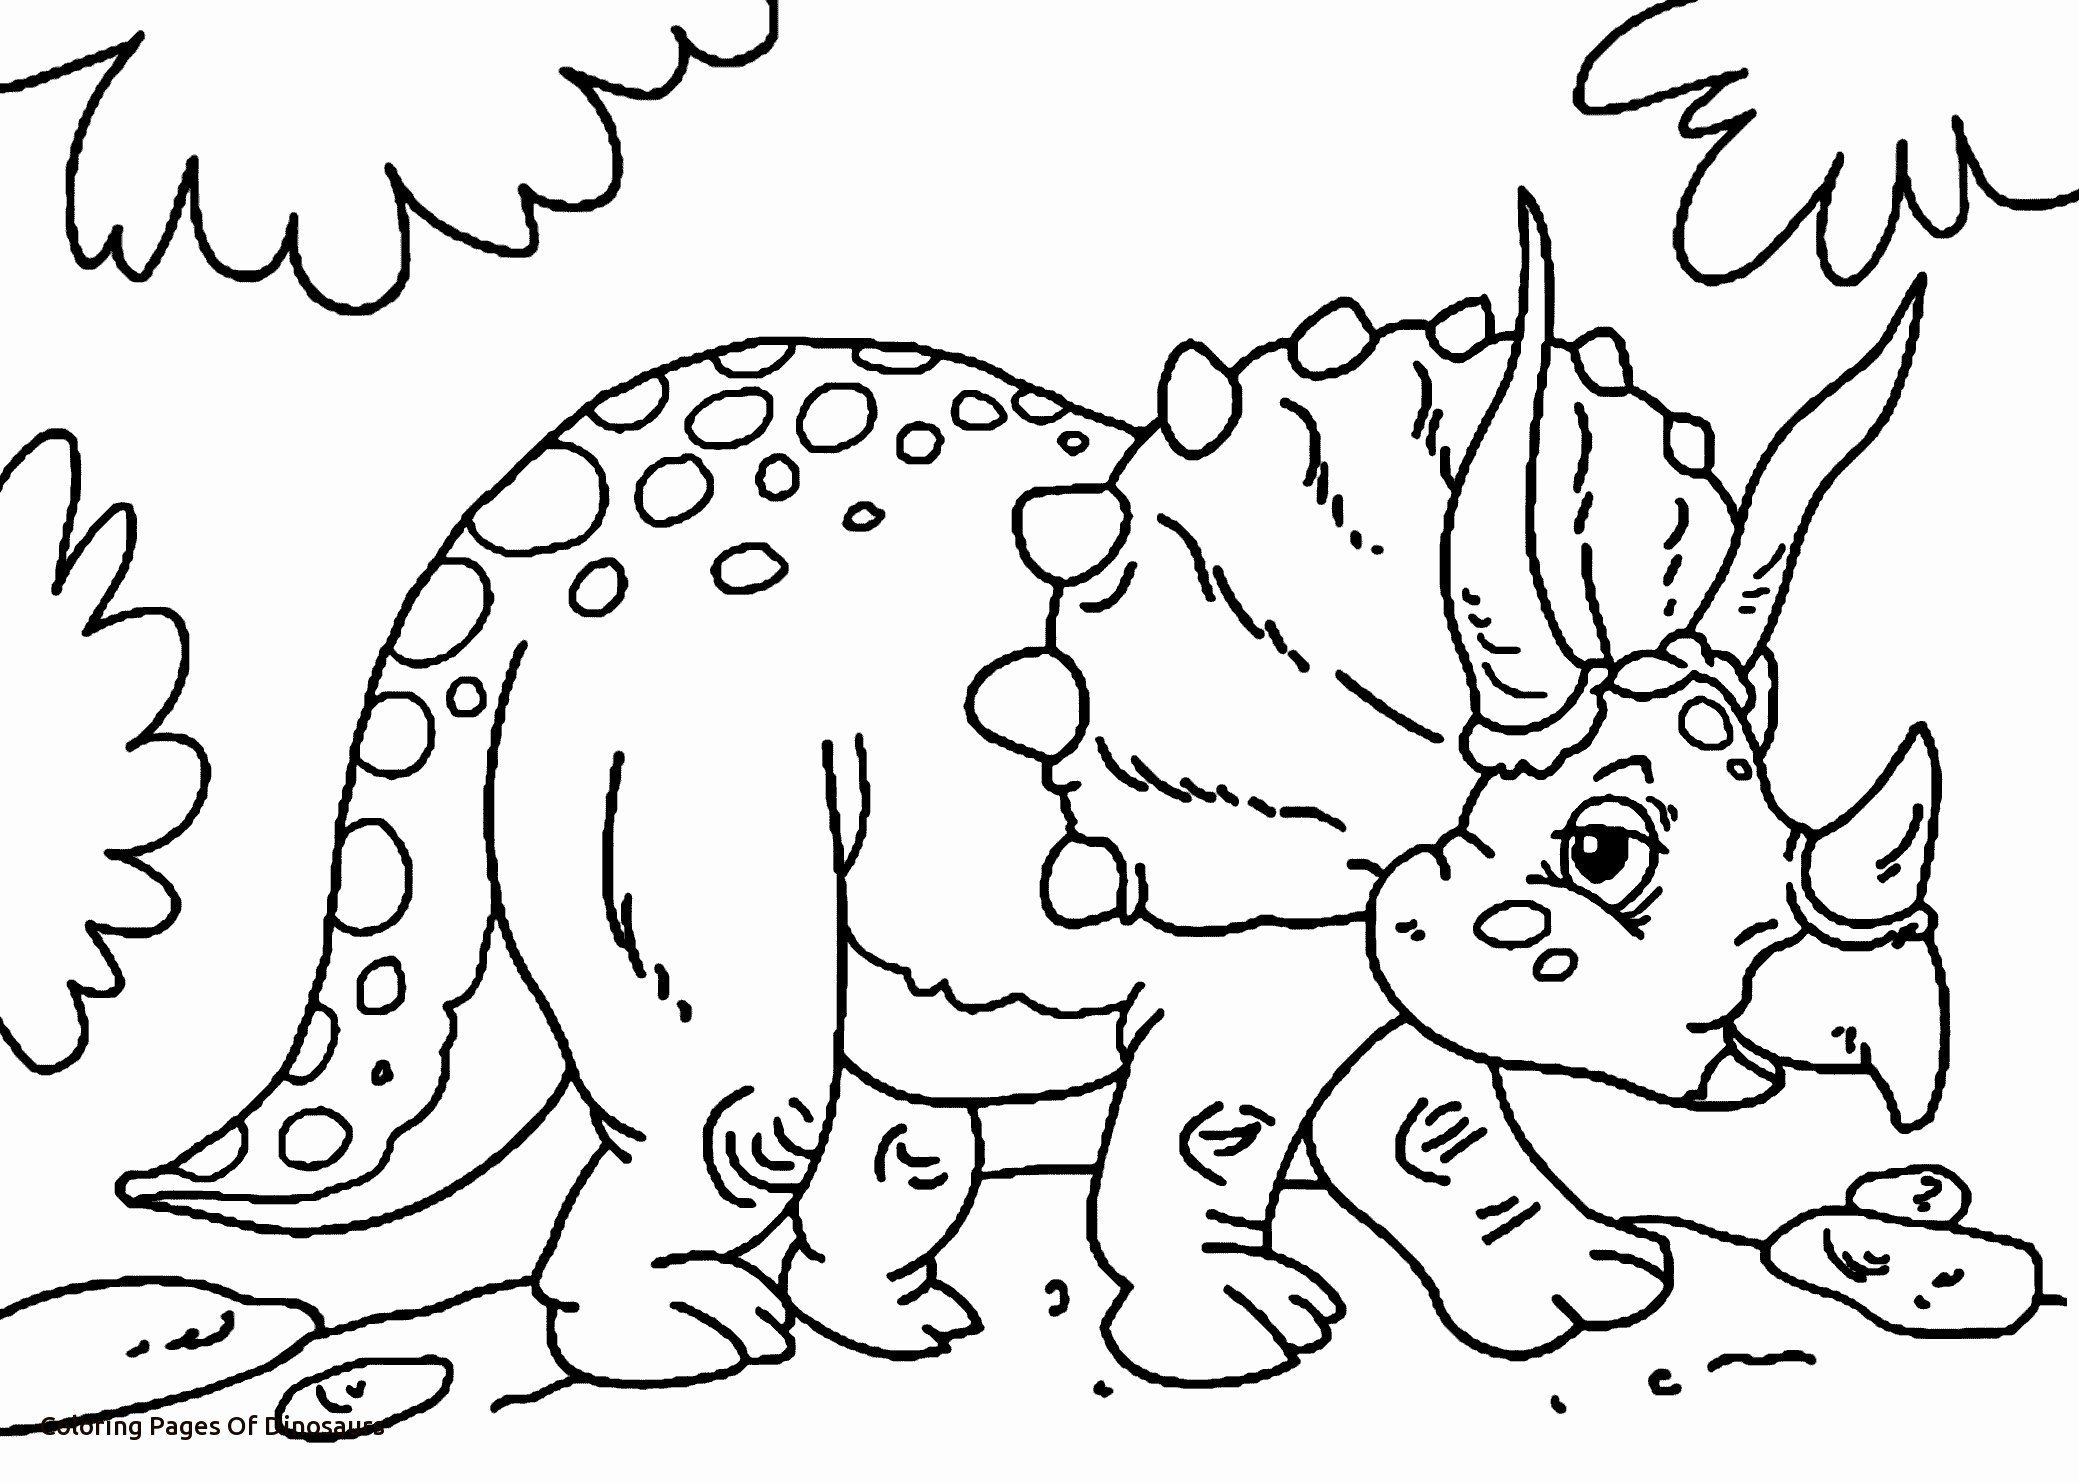 Dinosaur Free Coloring Pages Unique The Best Free Dinosaur Coloring Page Images Downloa Dinosaur Coloring Pages Dinosaur Coloring Sheets Cartoon Coloring Pages